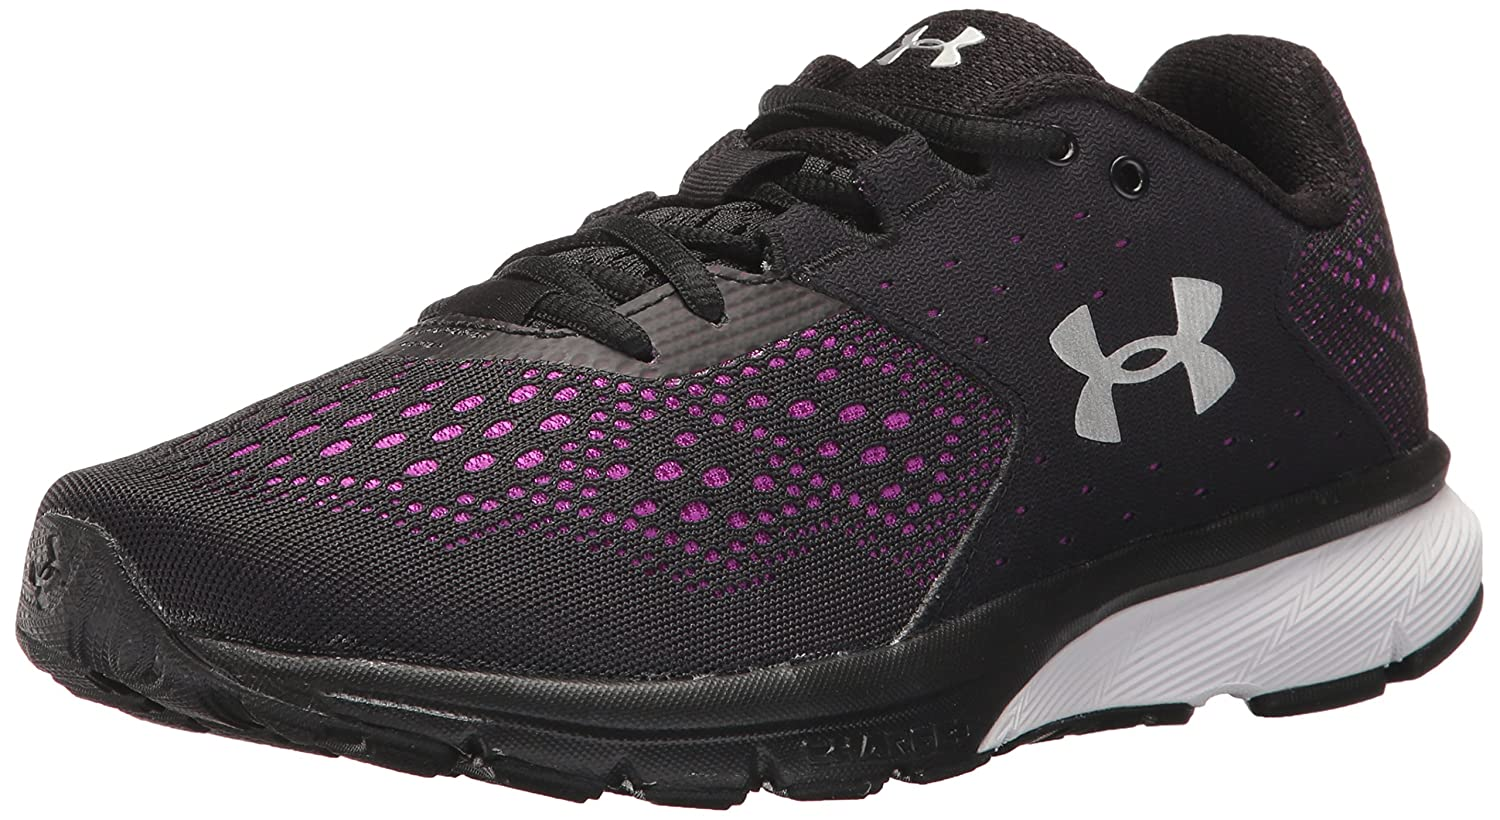 Under Armour Women's Charged Rebel Running Shoe B01NBJS7WZ 7 M US|Black (004)/Purple Rave